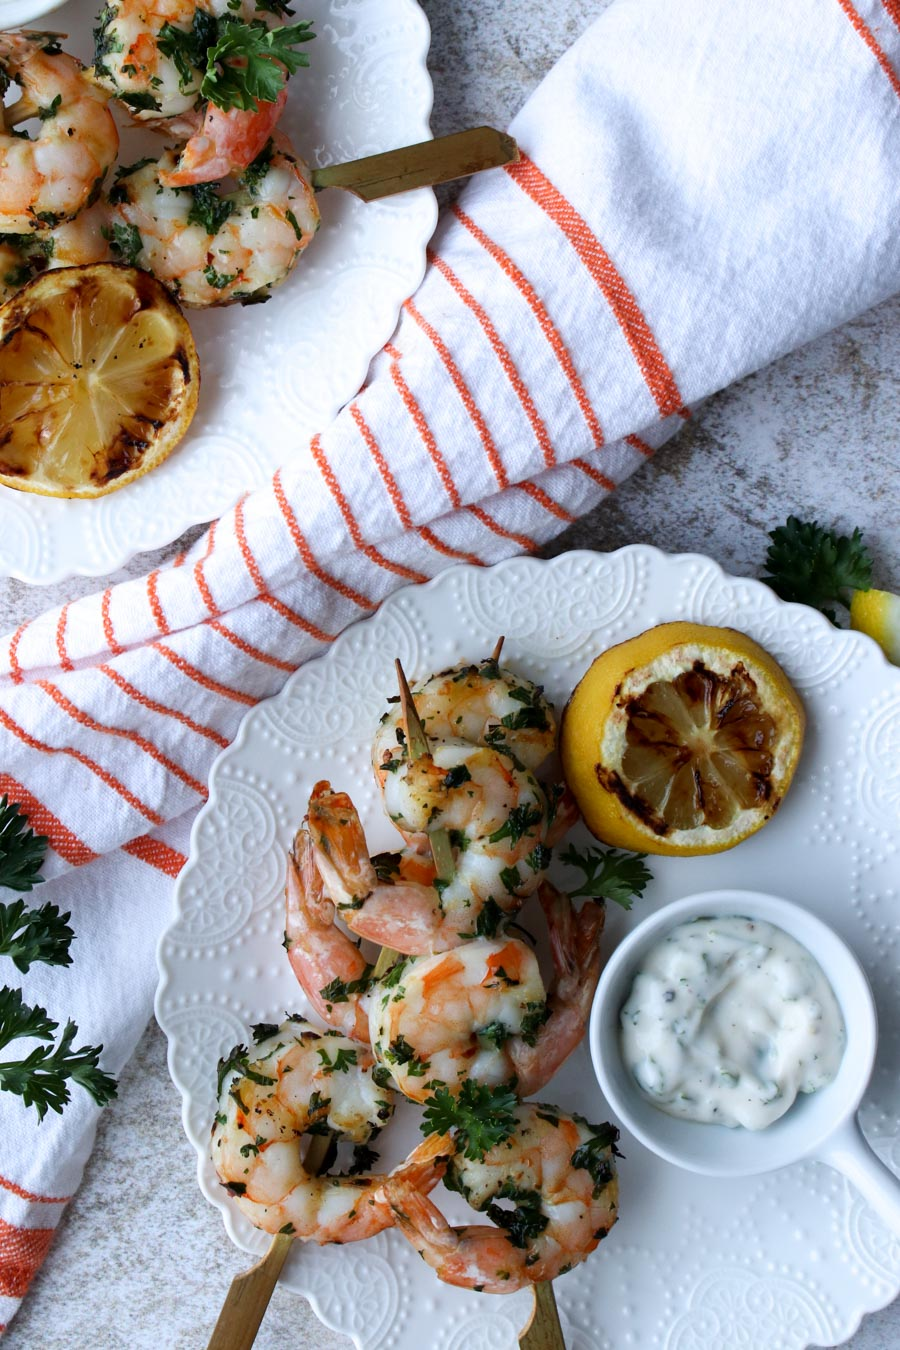 White plate with two shrimp skewers, a grilled lemon half, and some white sauce